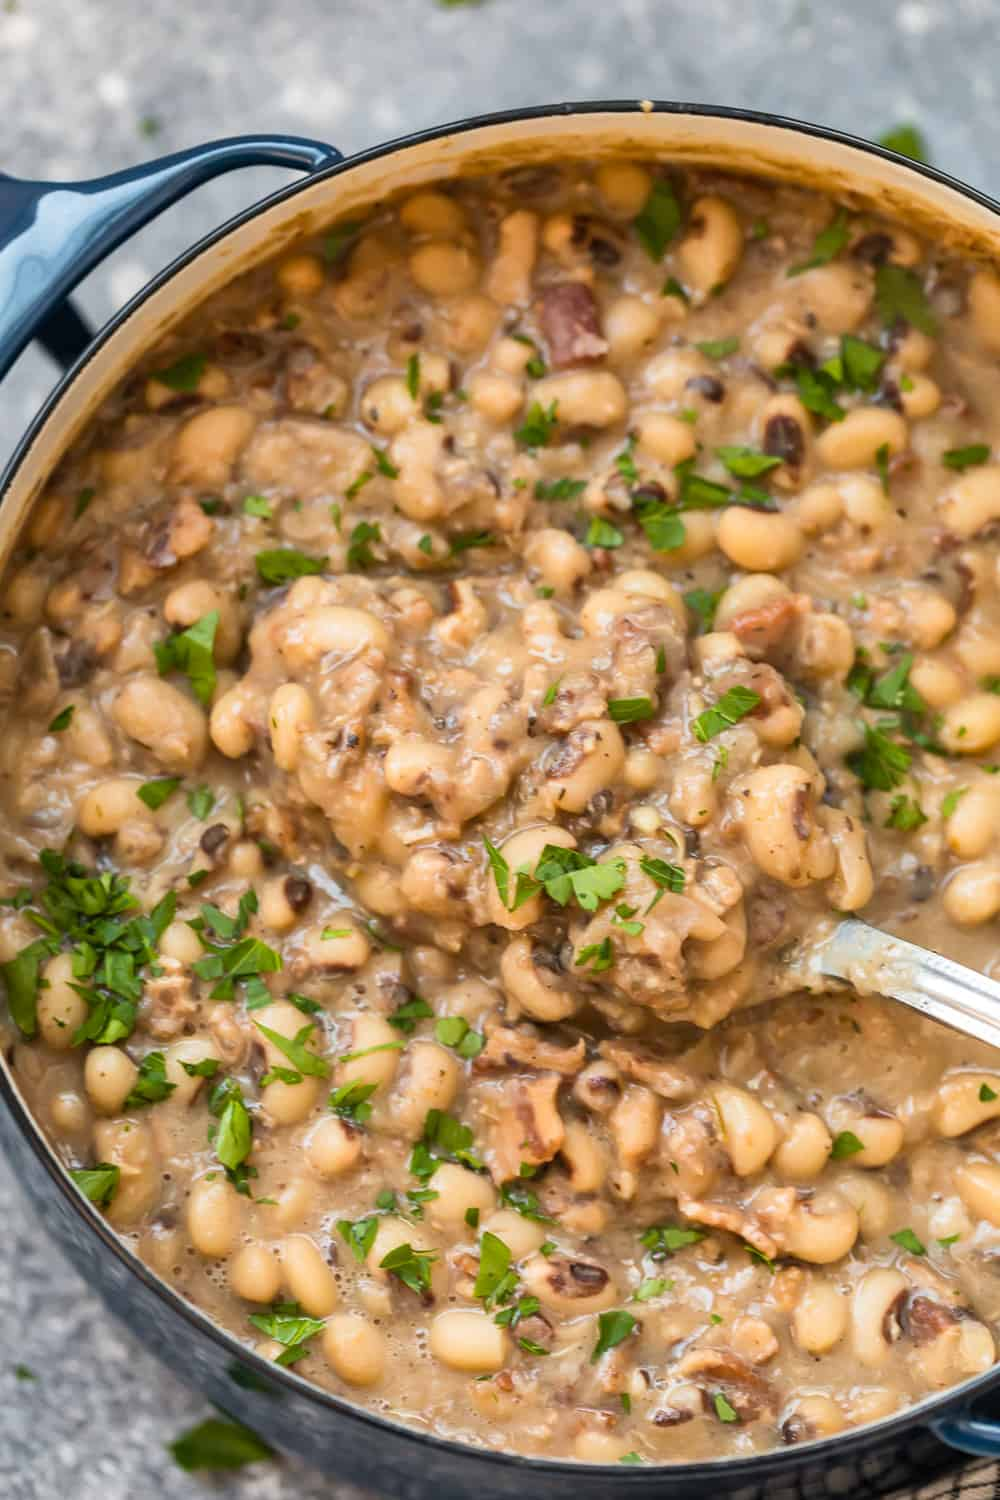 black eyes peas in a large pot